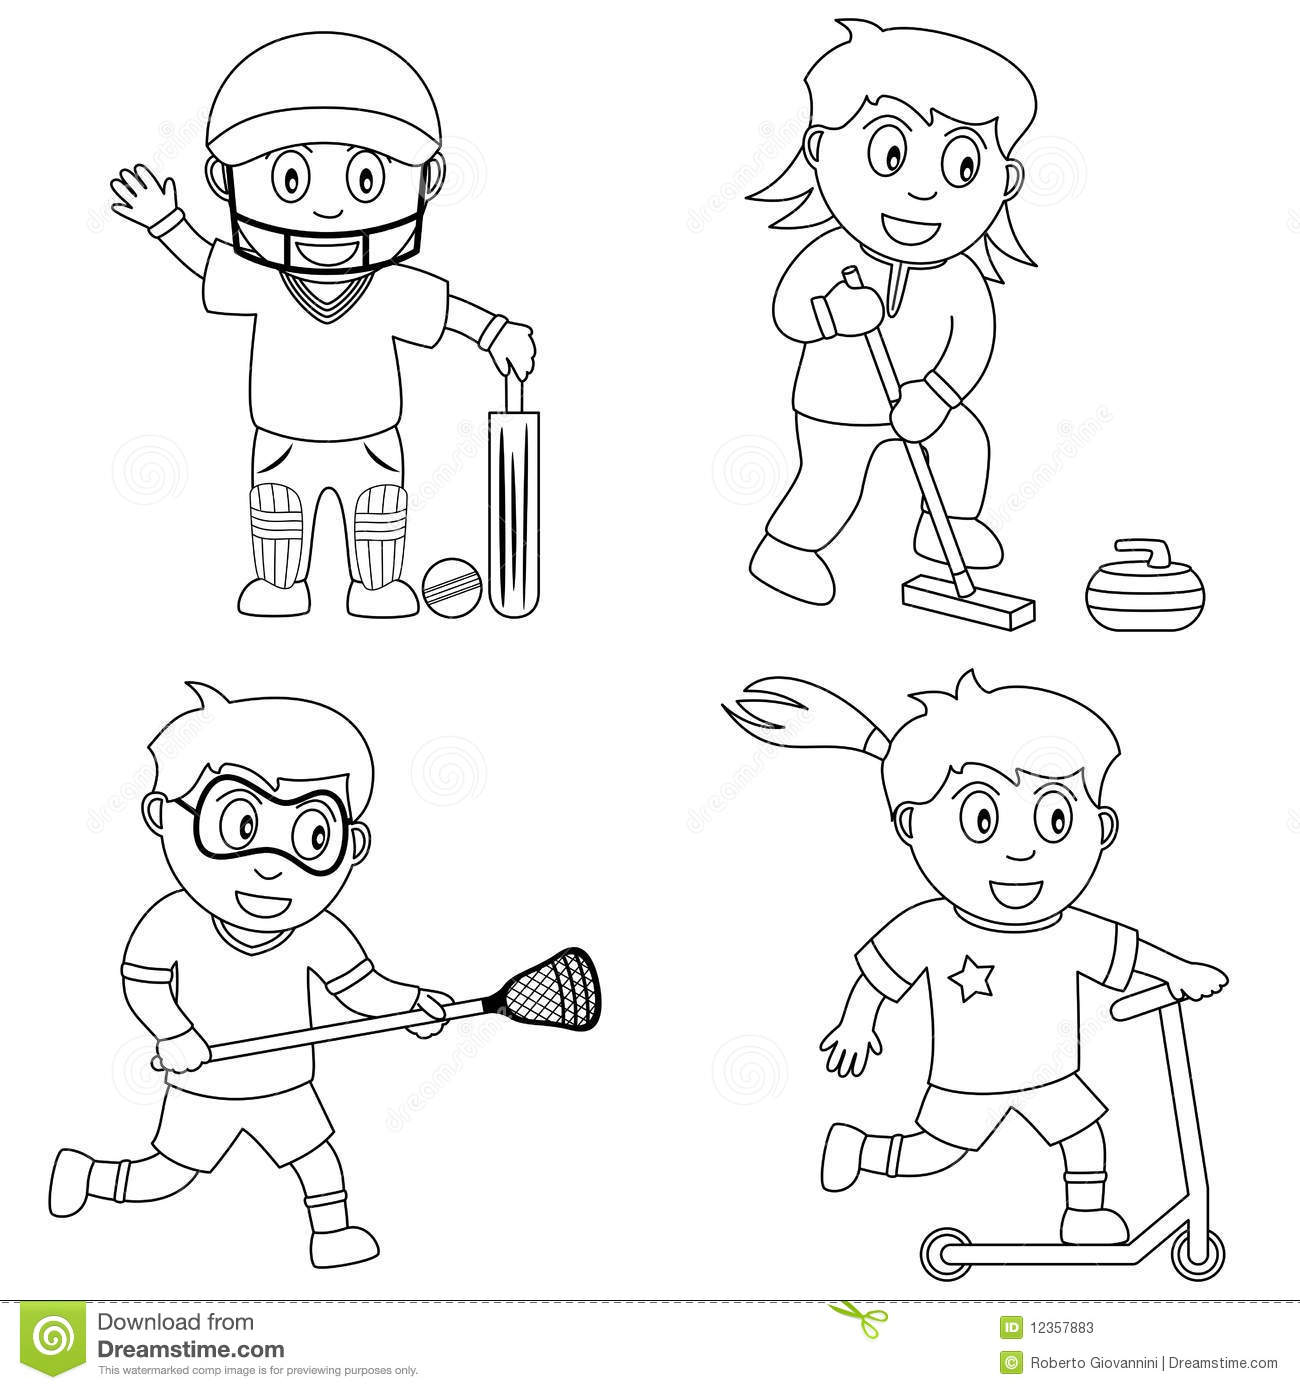 Coloring Sport For Kids 6 Stock Photos